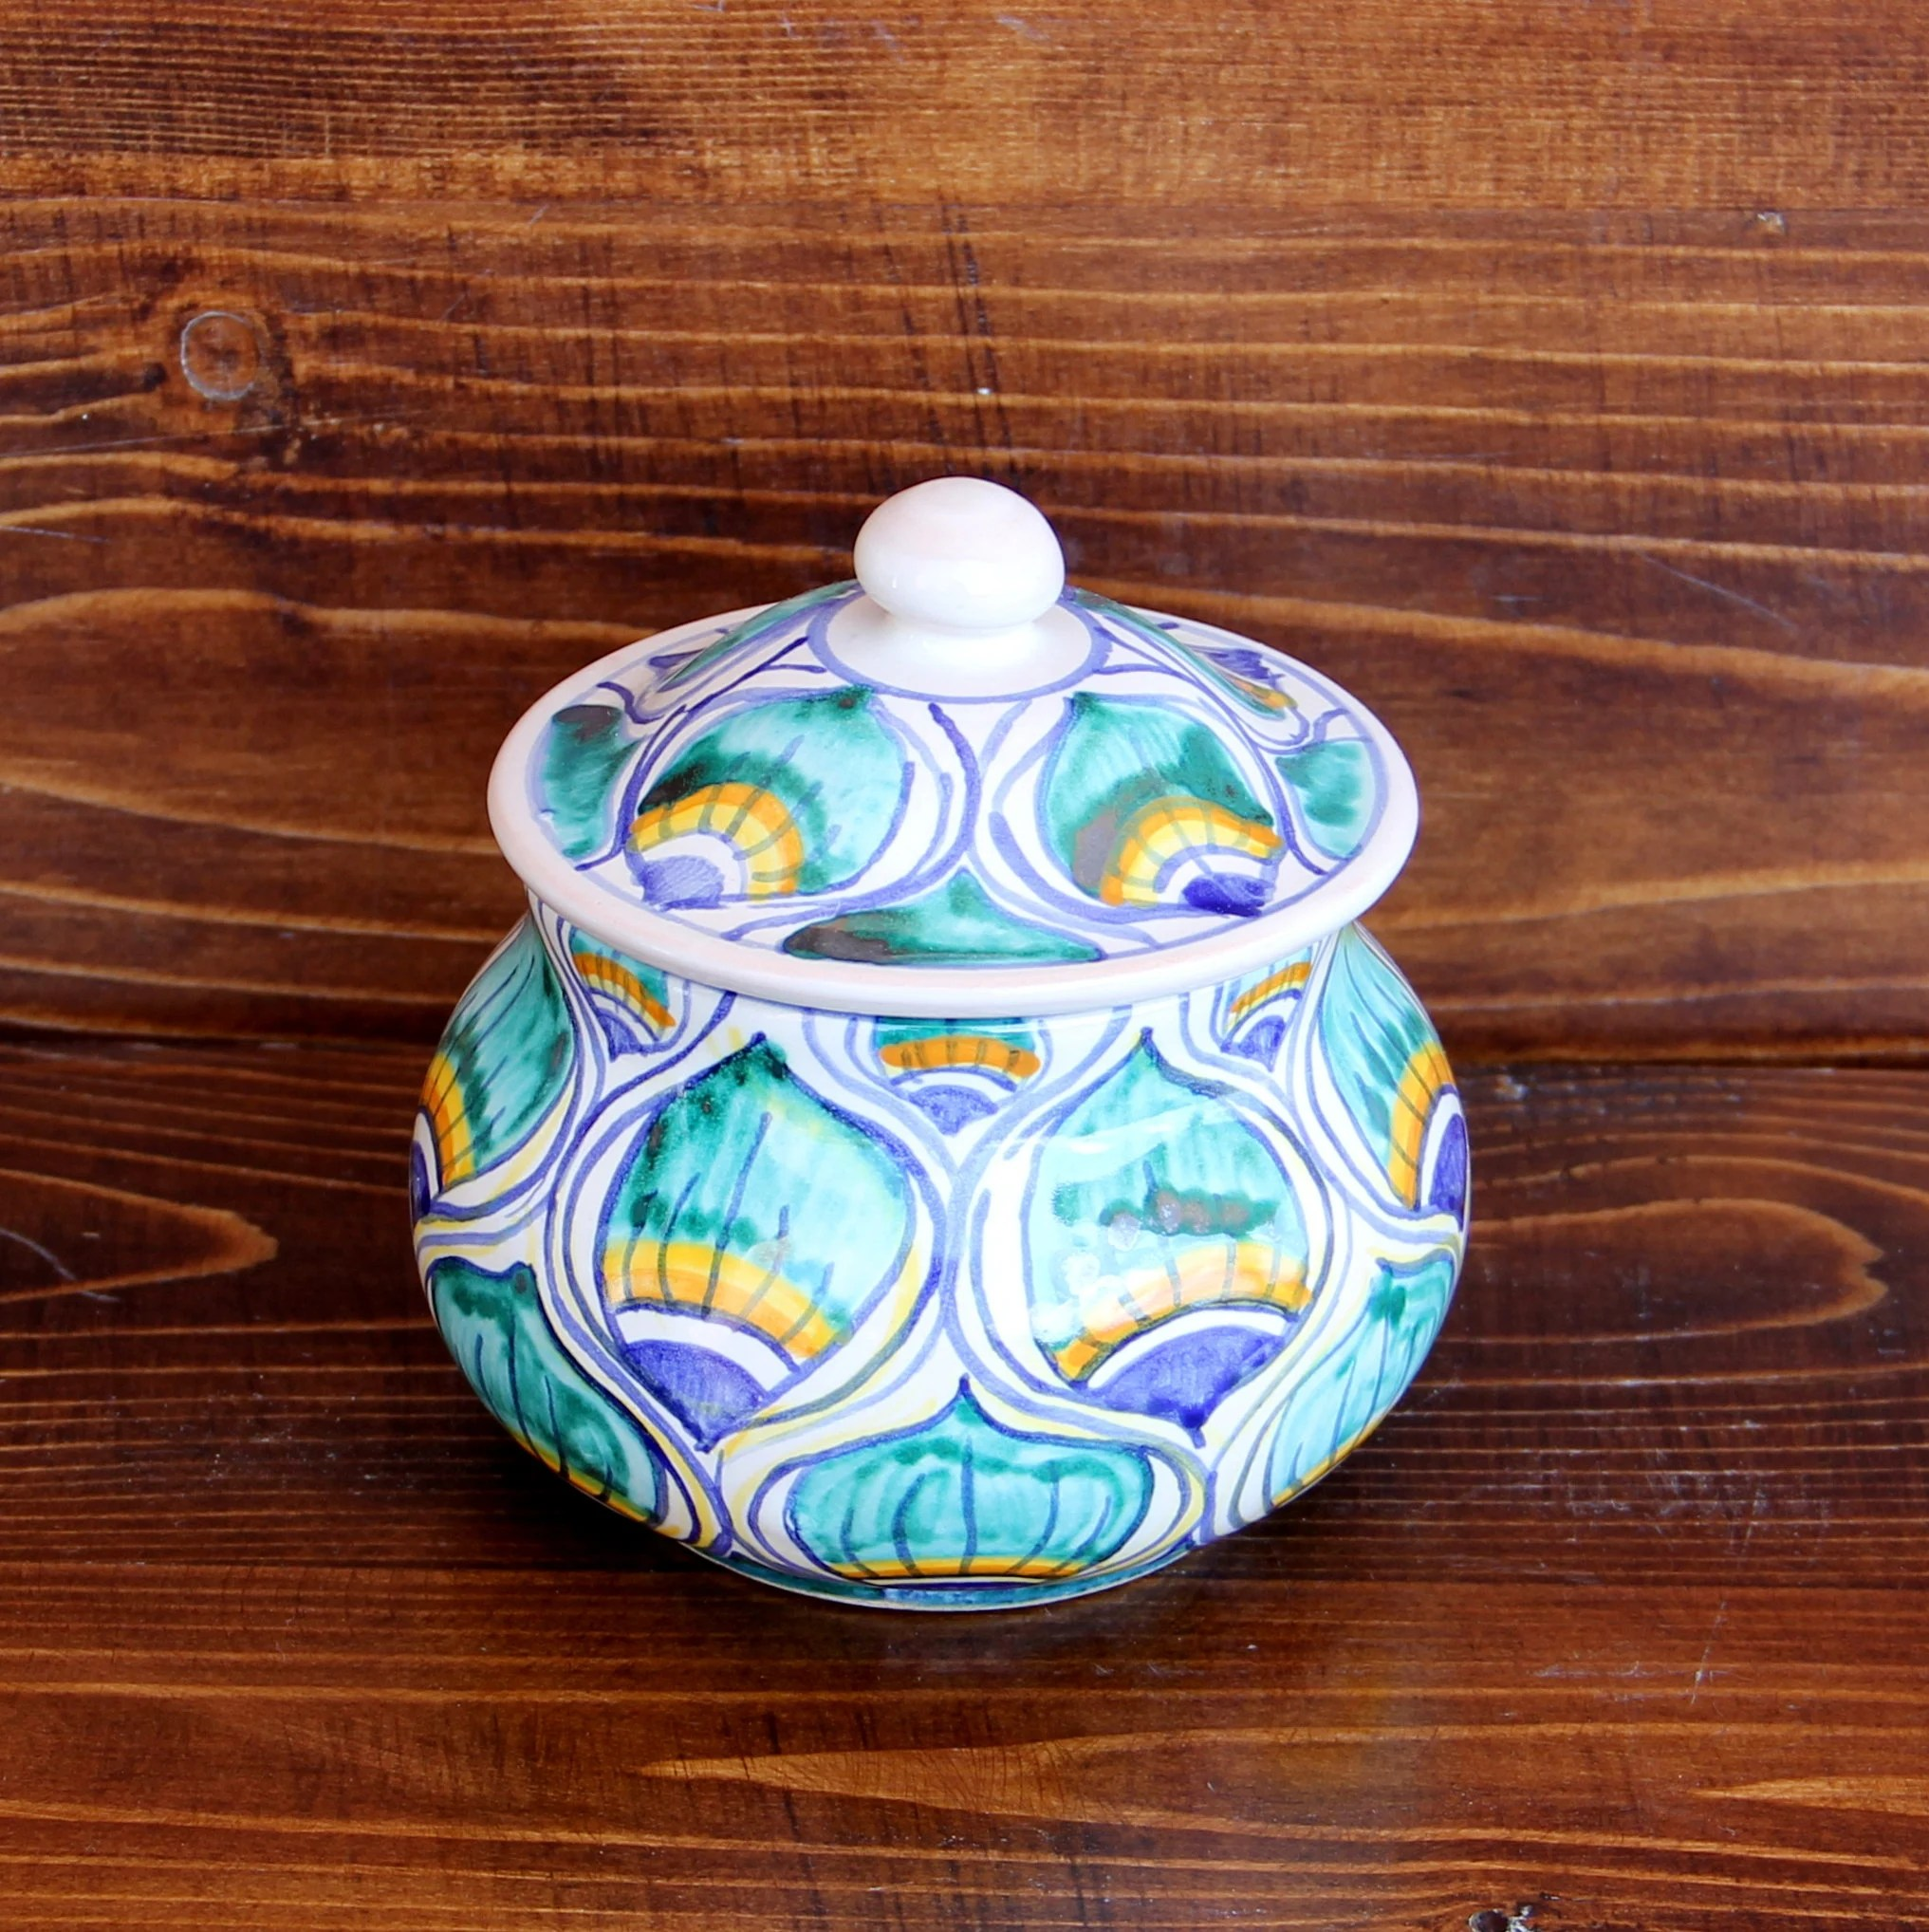 kitchen pottery canisters building cabinet doors small green italy ceramic jar canister and container coffee jars or spices handpainted italian gift for mom